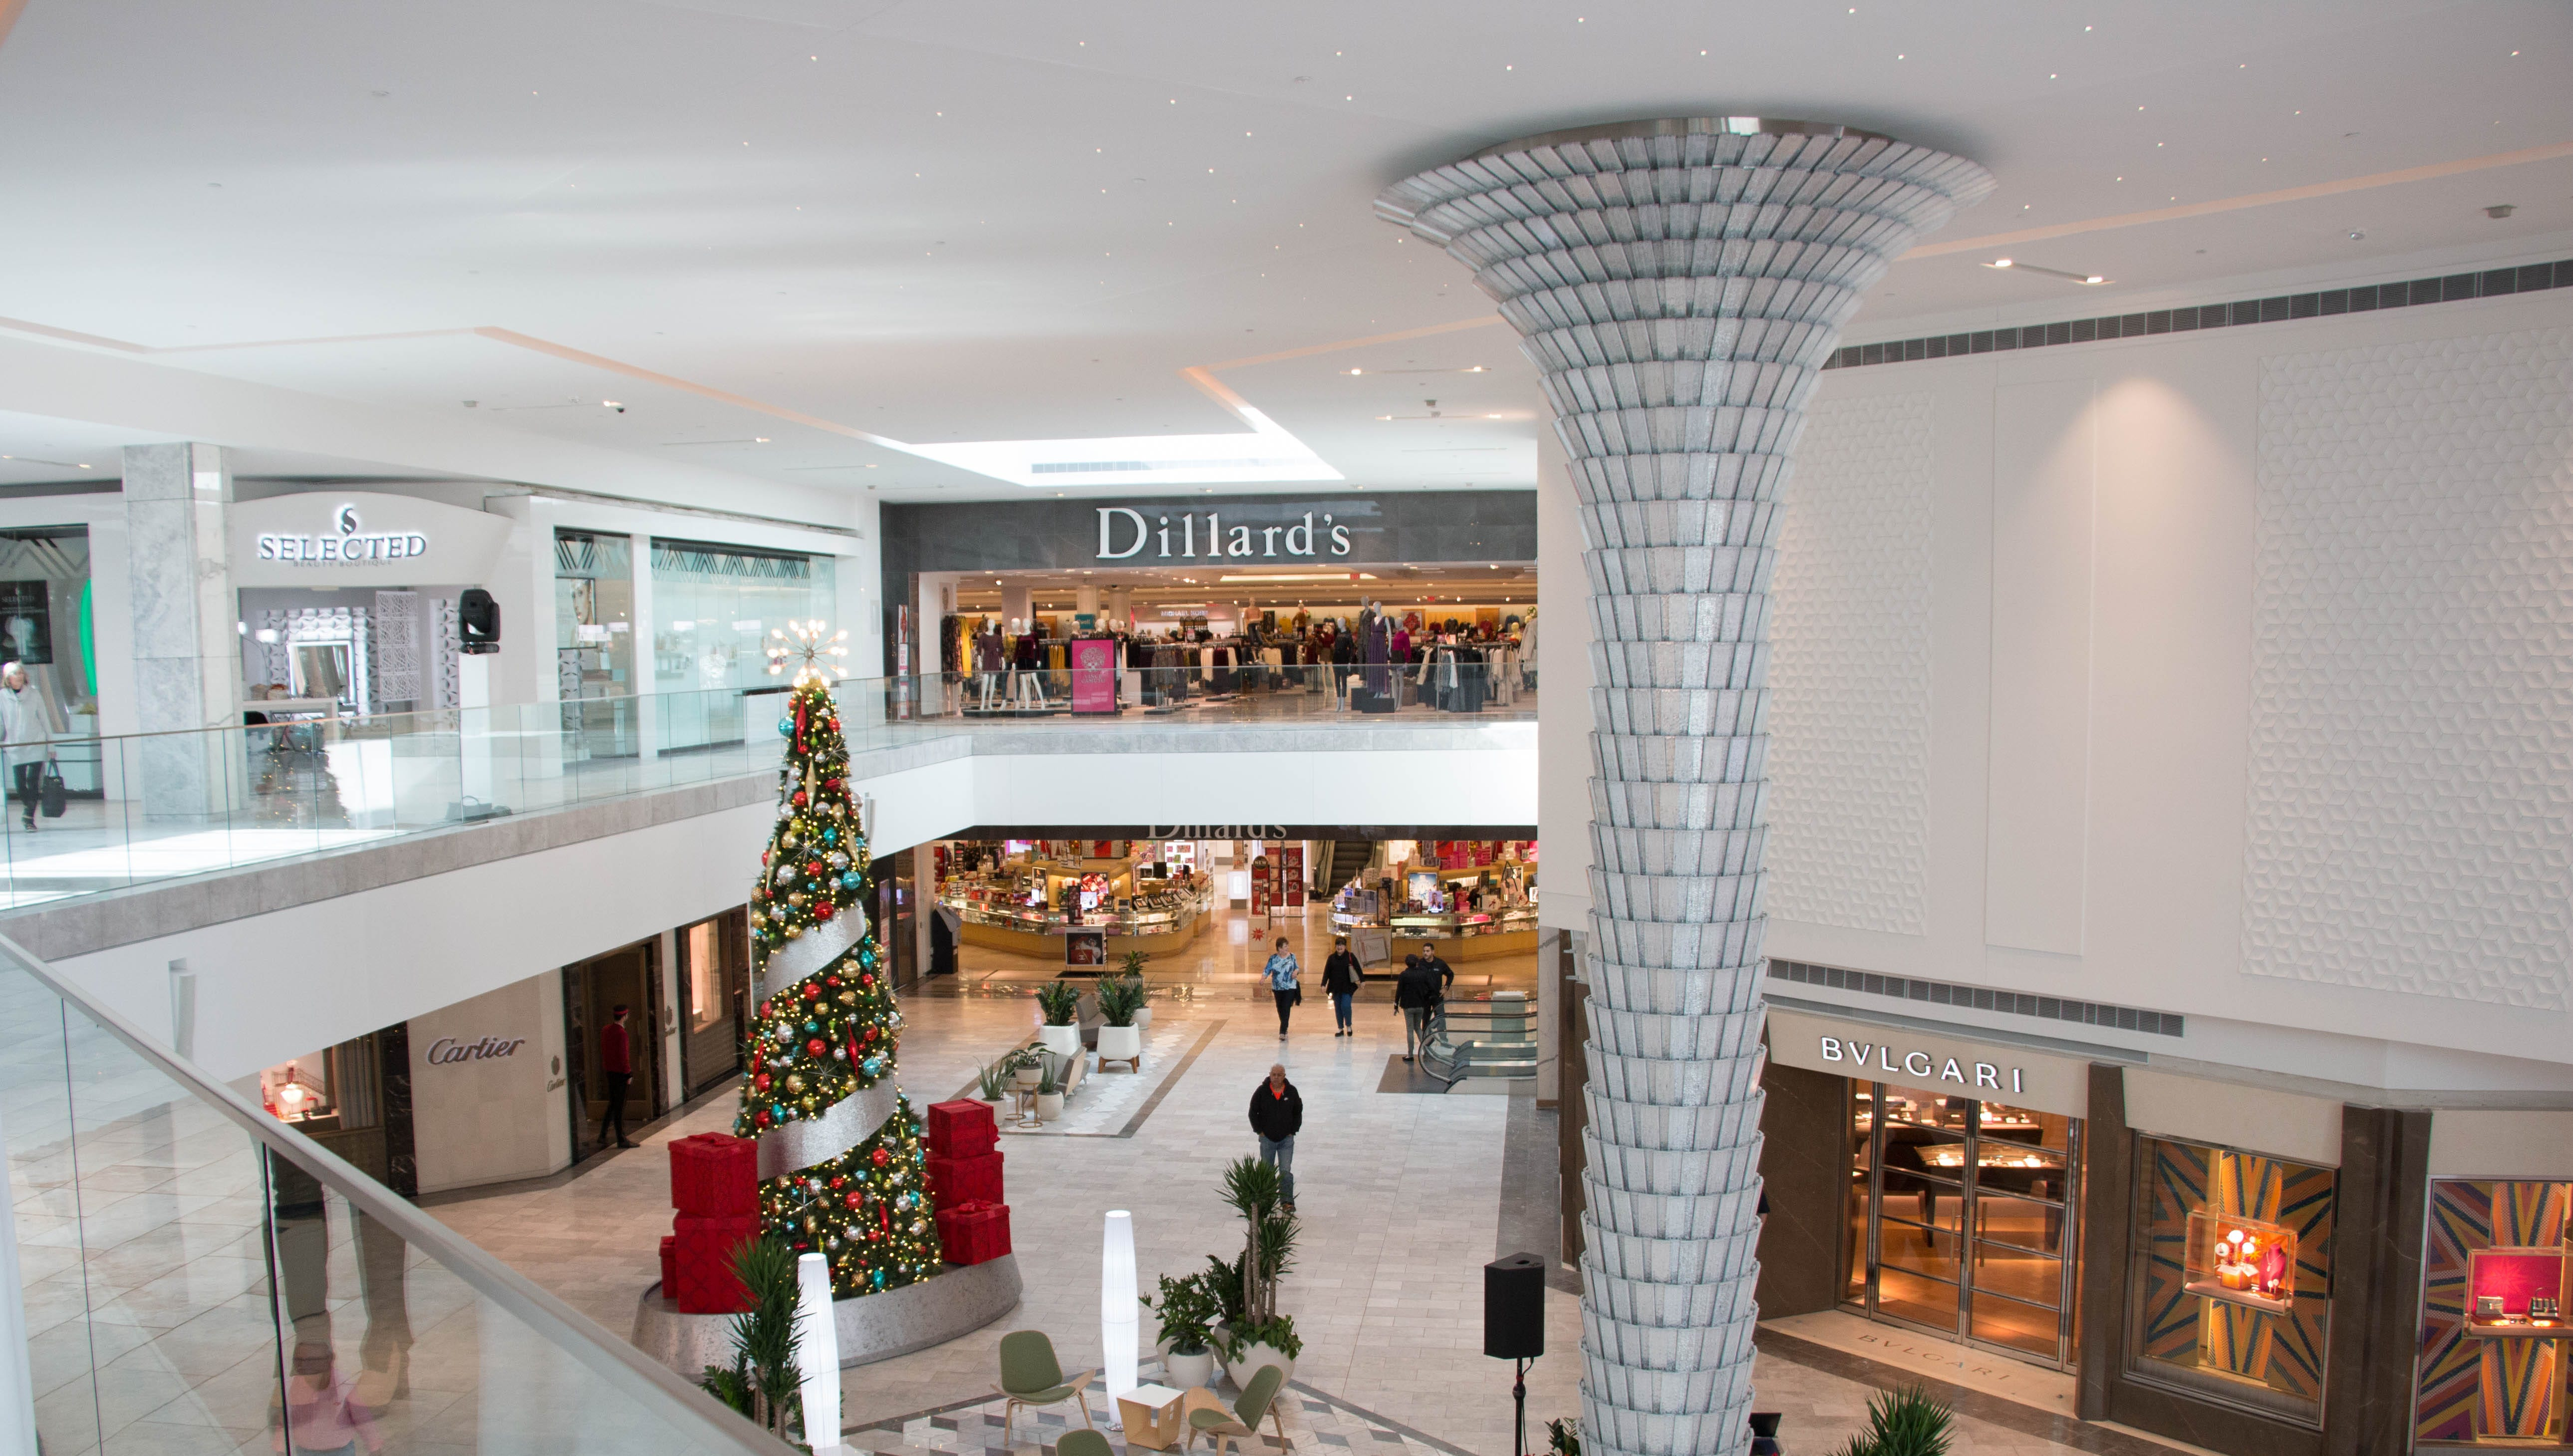 Scottsdale Fashion Square doubles down on luxury, adds wing with crystal chandelier and valet lounge